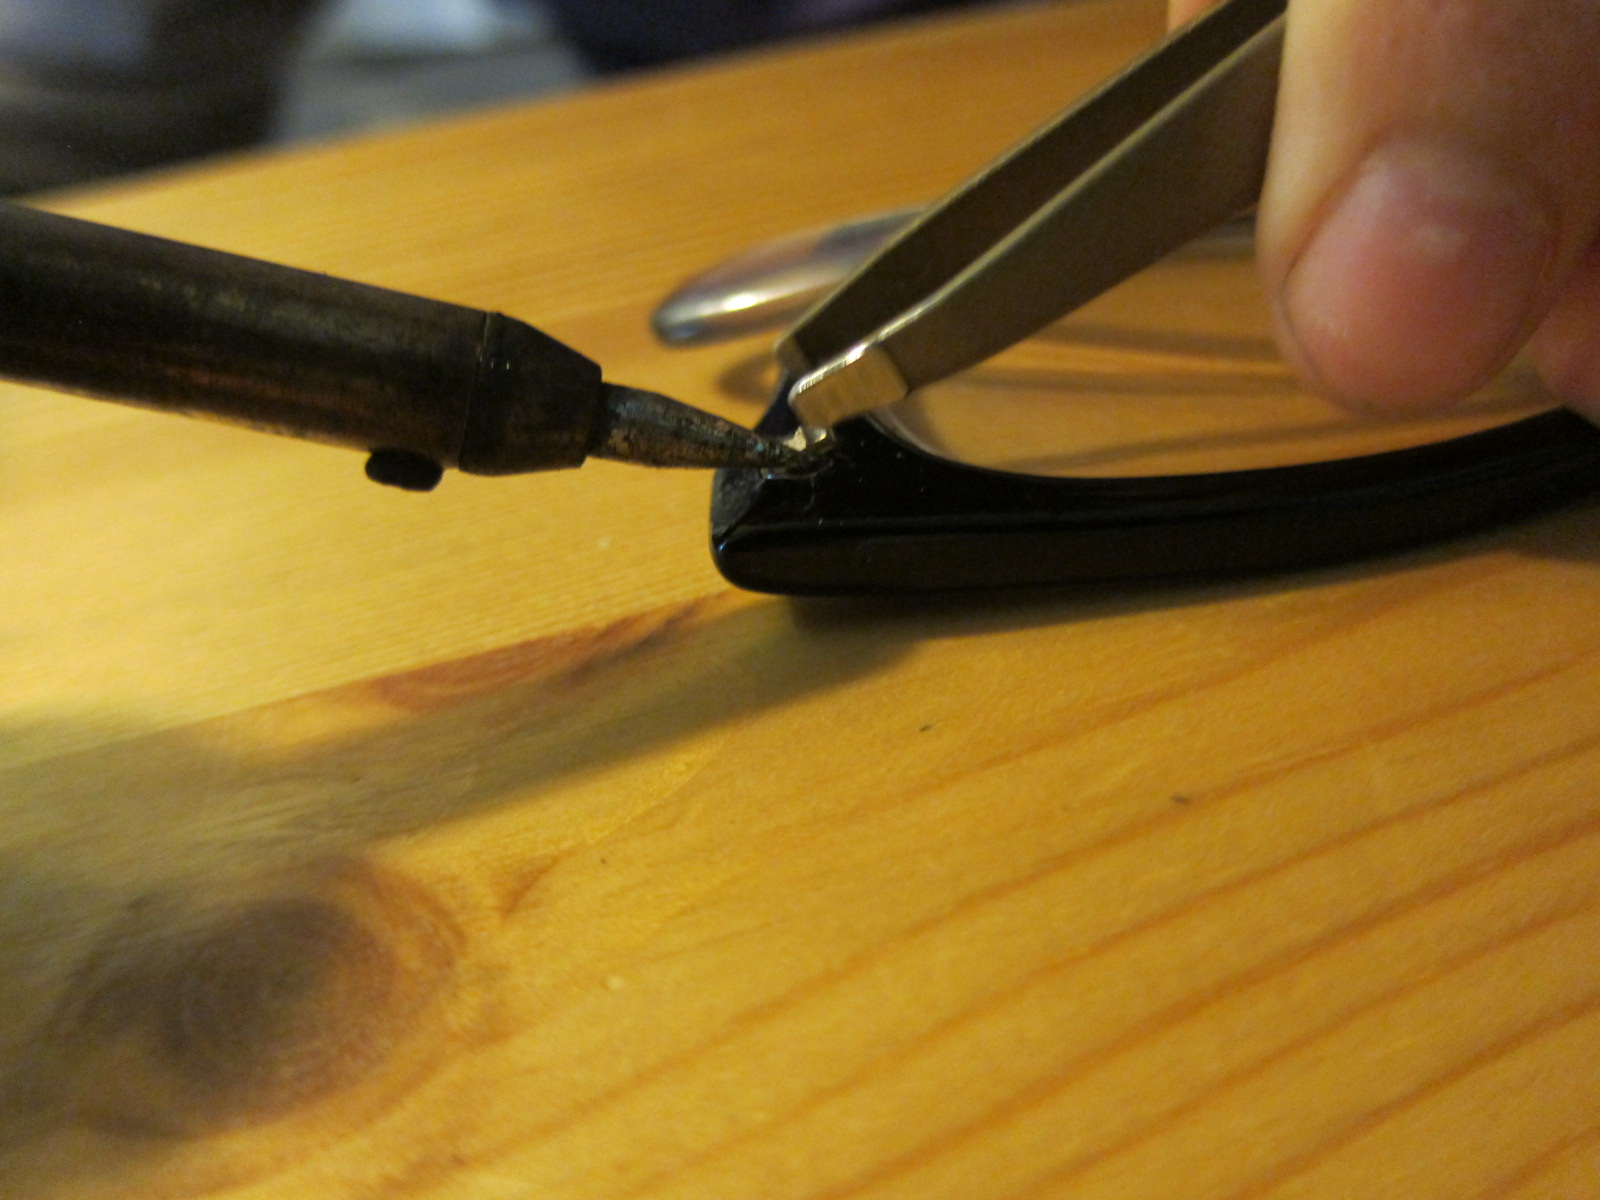 23918cc2c274 Replacing hinge in plastic-framed glasses :: the reality tunnel